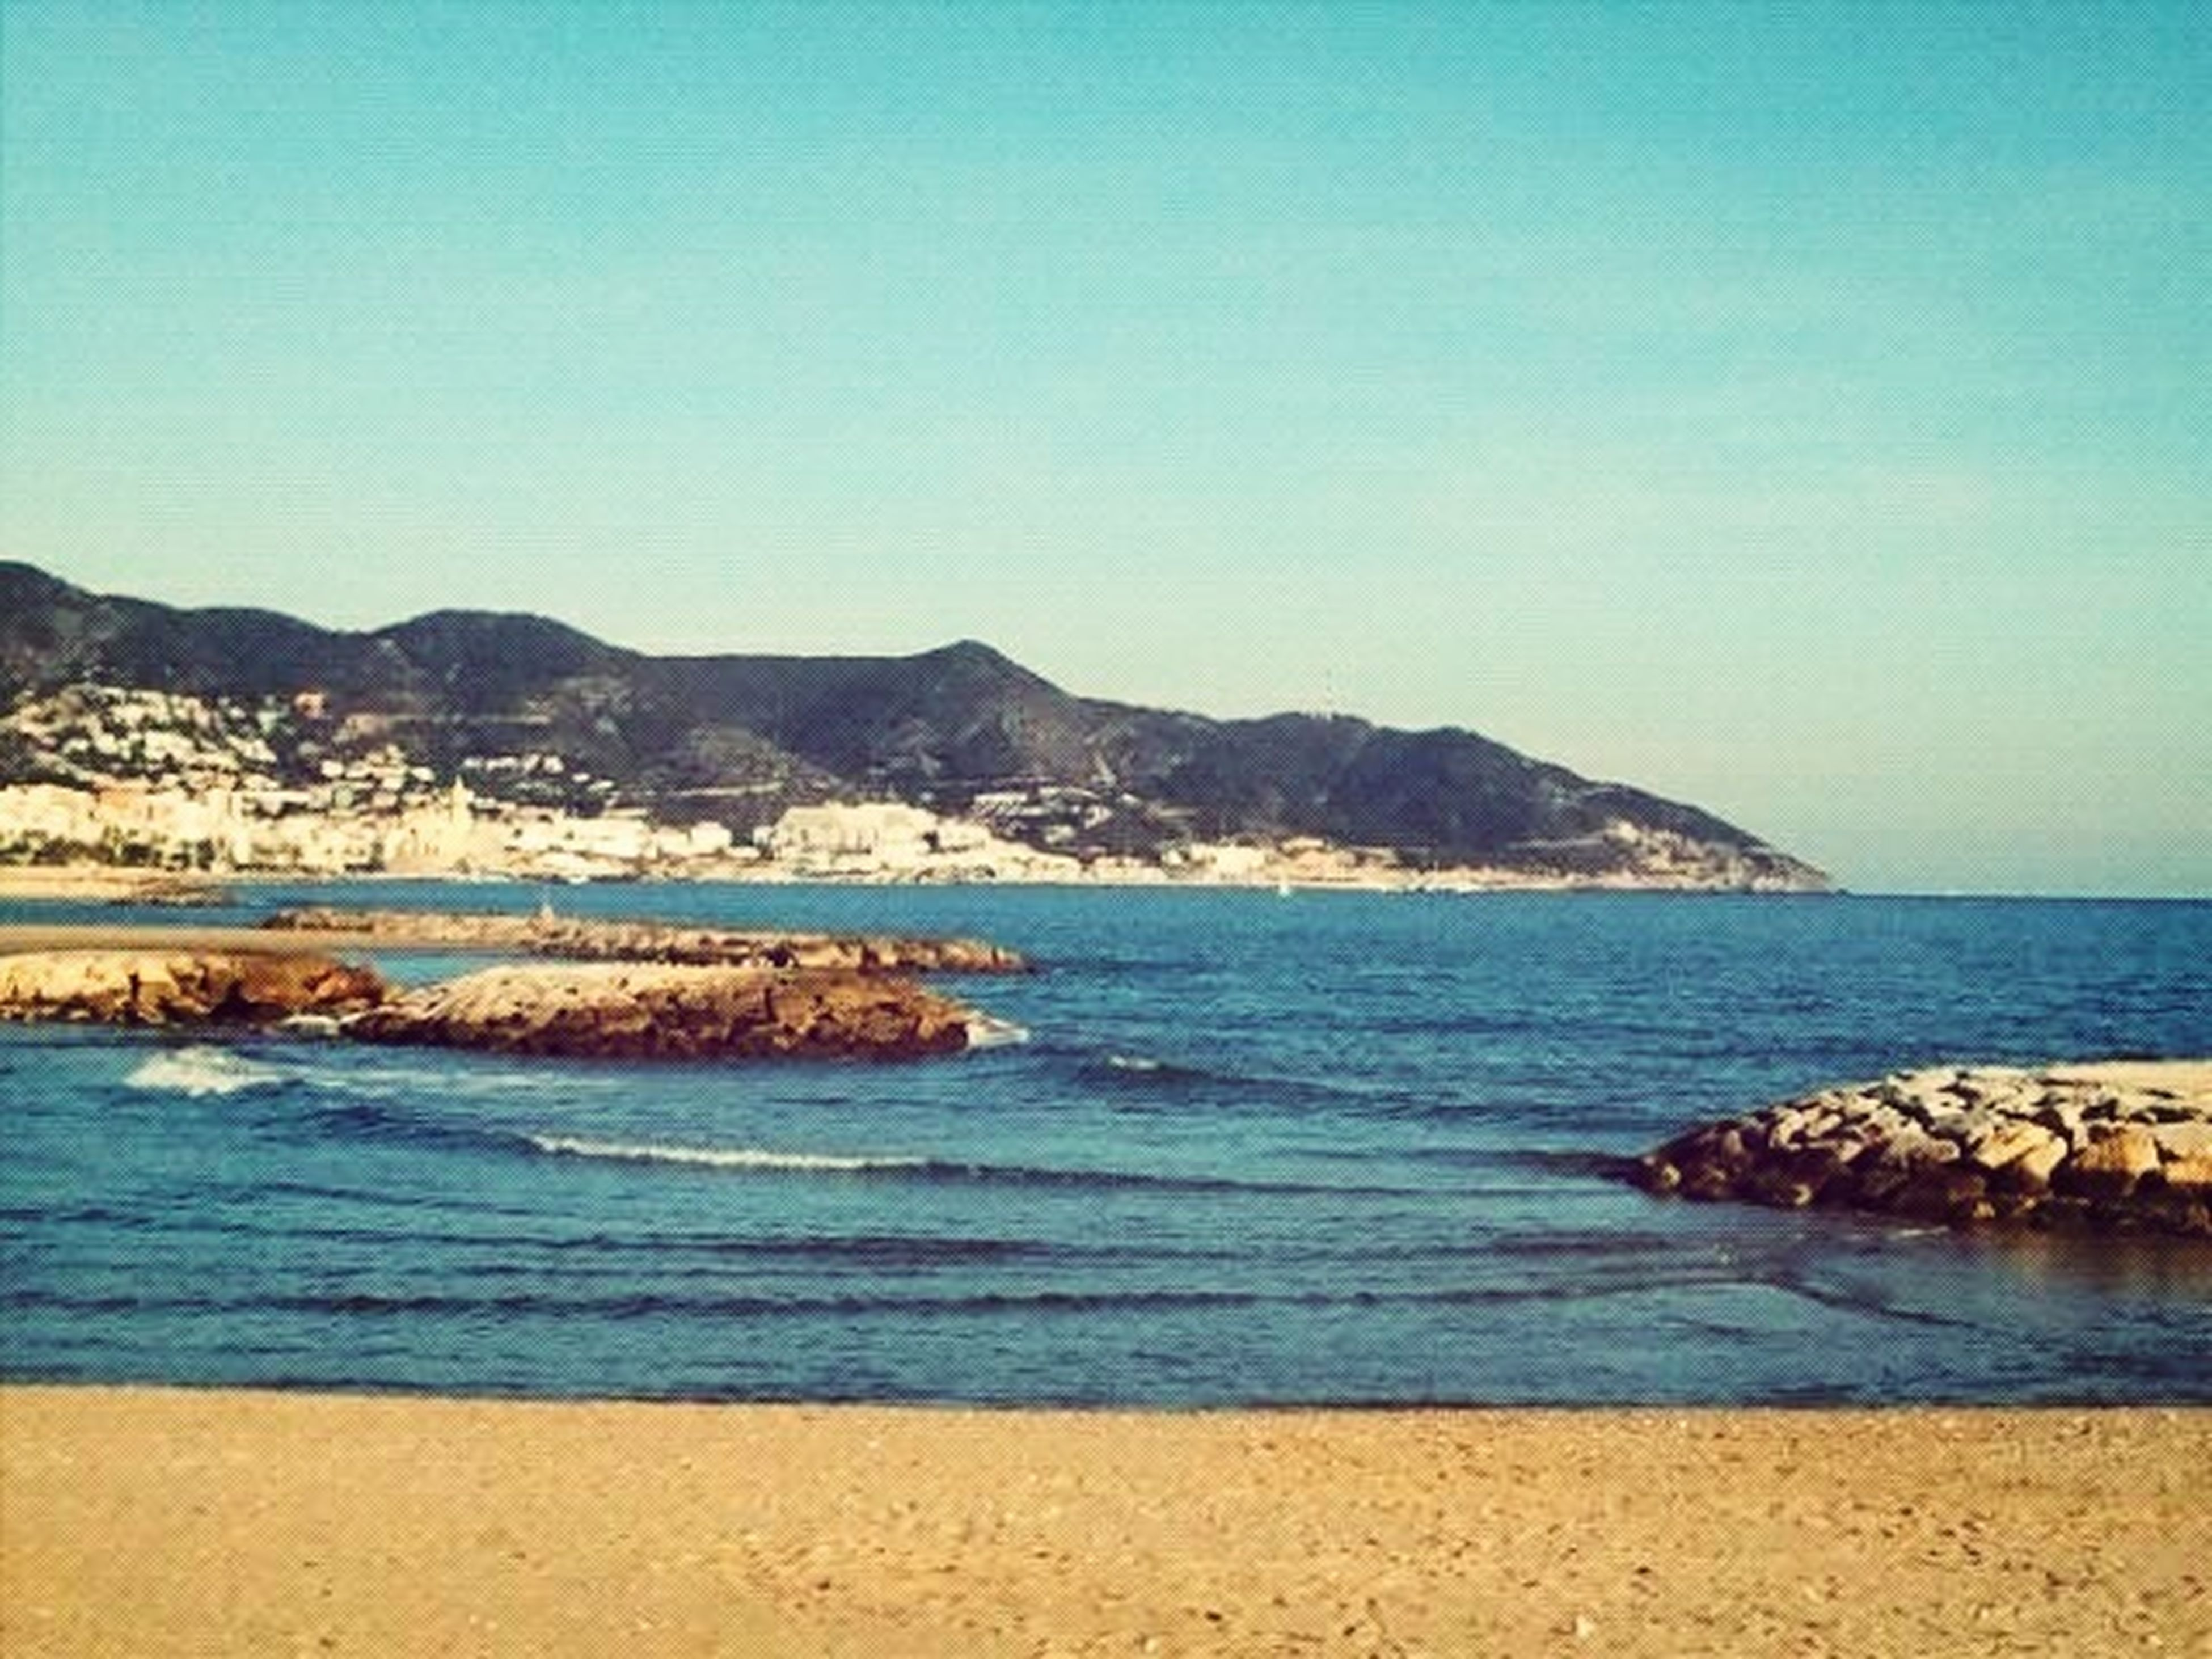 sea, water, clear sky, beach, copy space, blue, scenics, tranquil scene, shore, beauty in nature, tranquility, mountain, sand, coastline, nature, horizon over water, idyllic, wave, outdoors, no people